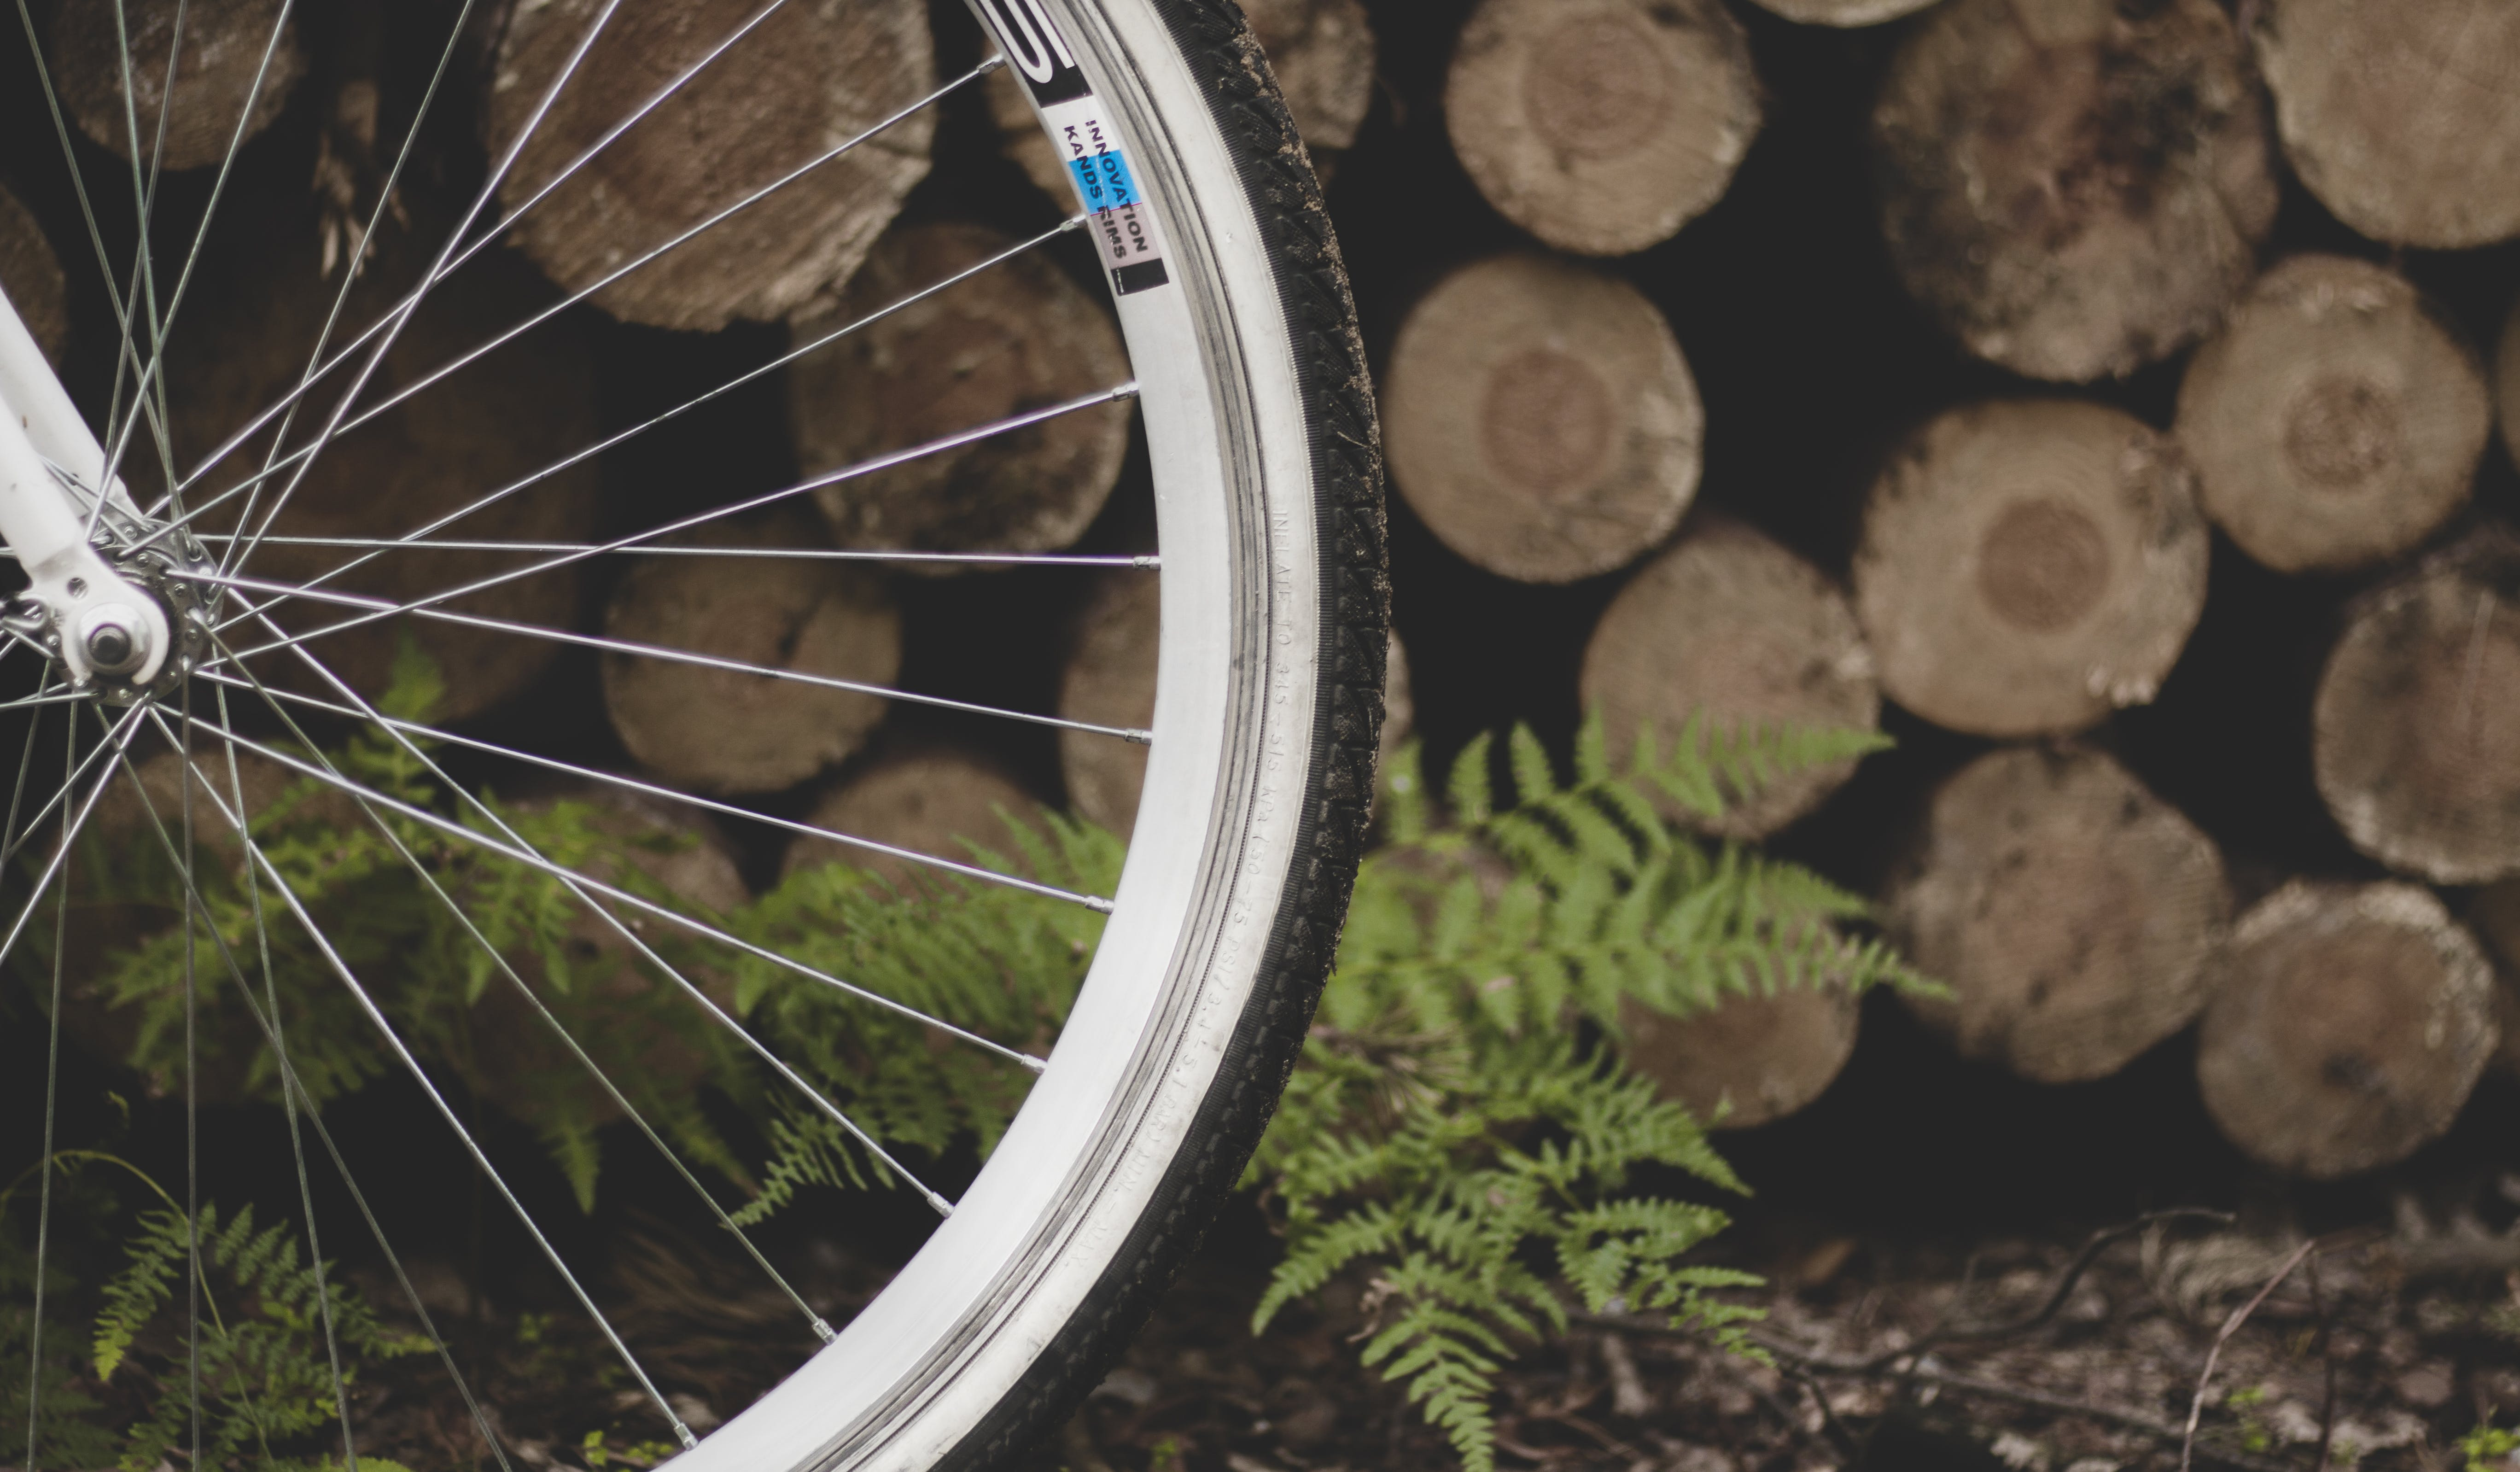 Bicycle Tire Near Fern Plant and Pile of Wood Logs